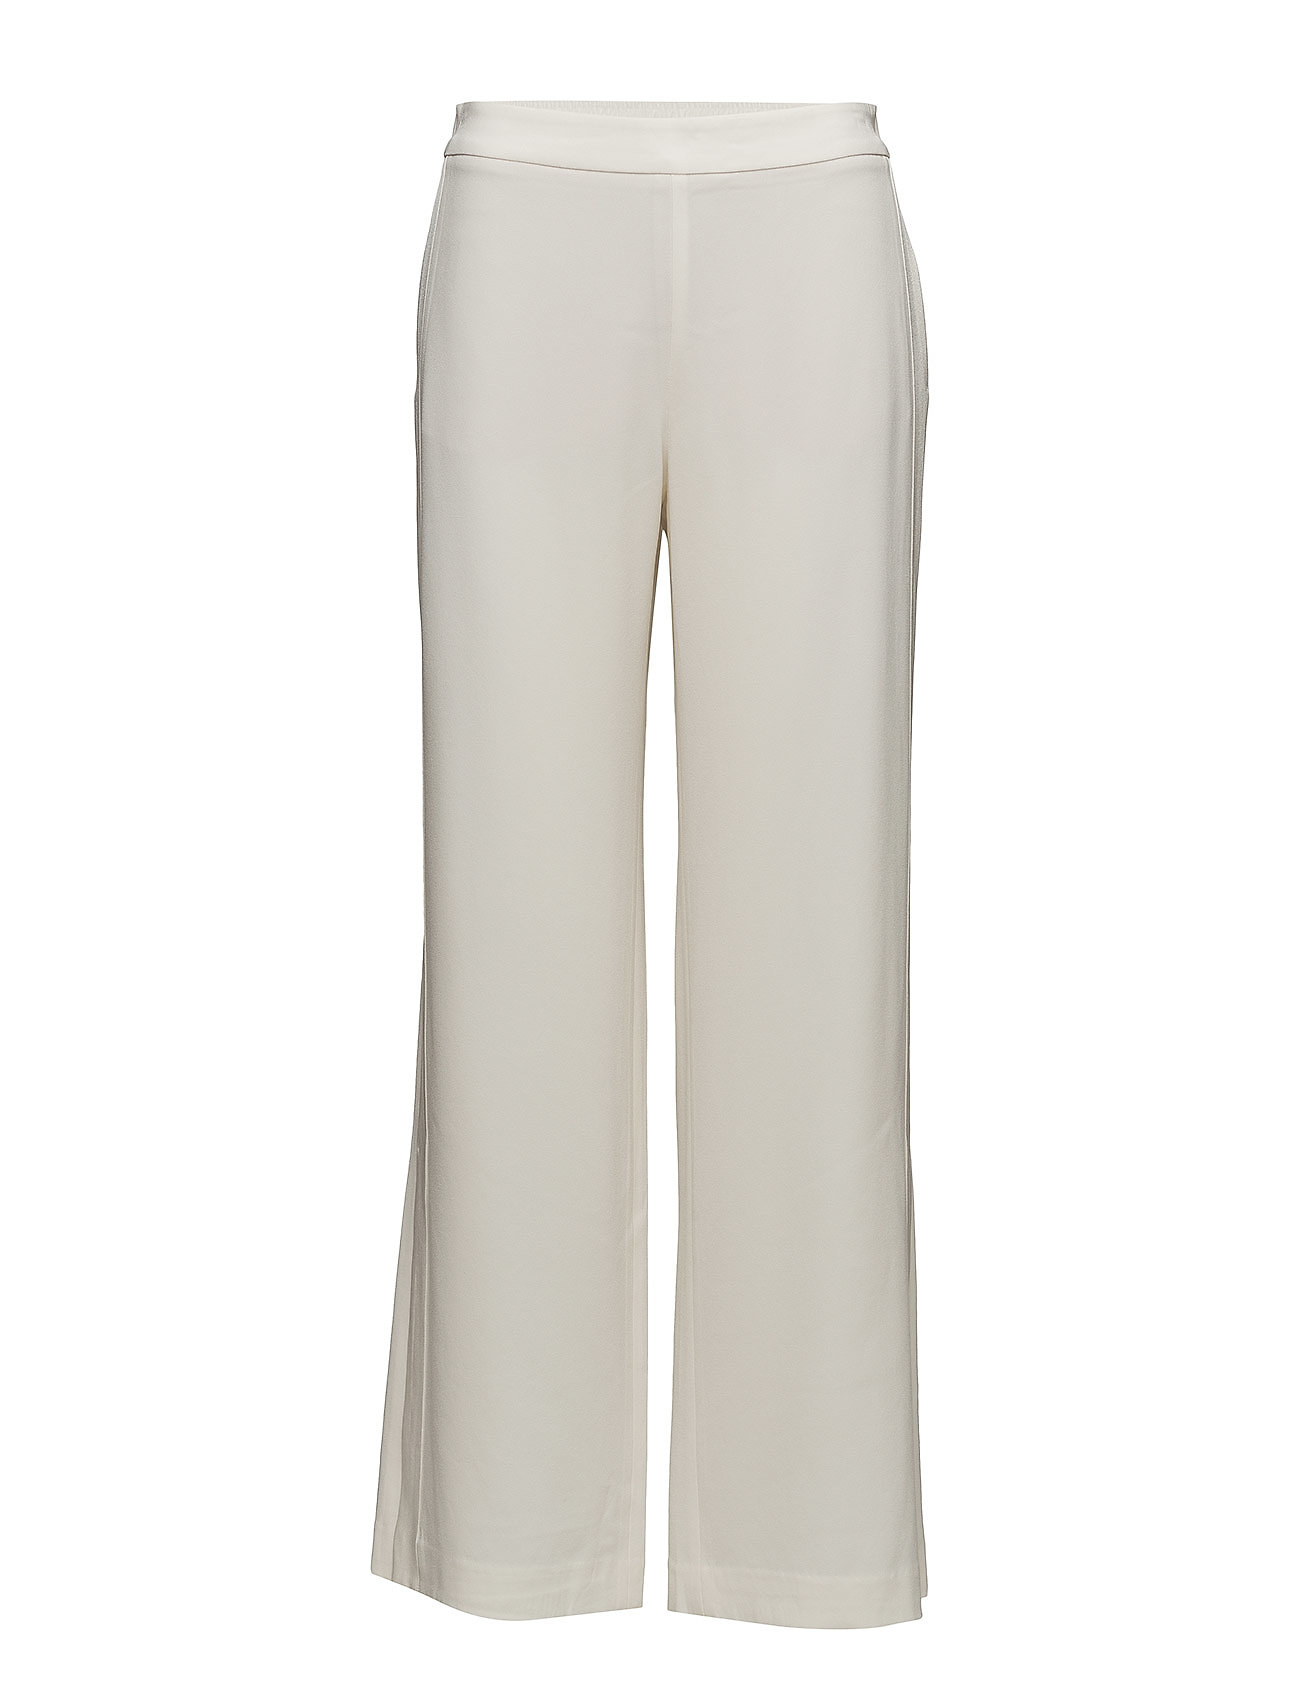 Filippa K Clare Wide Leg Trousers